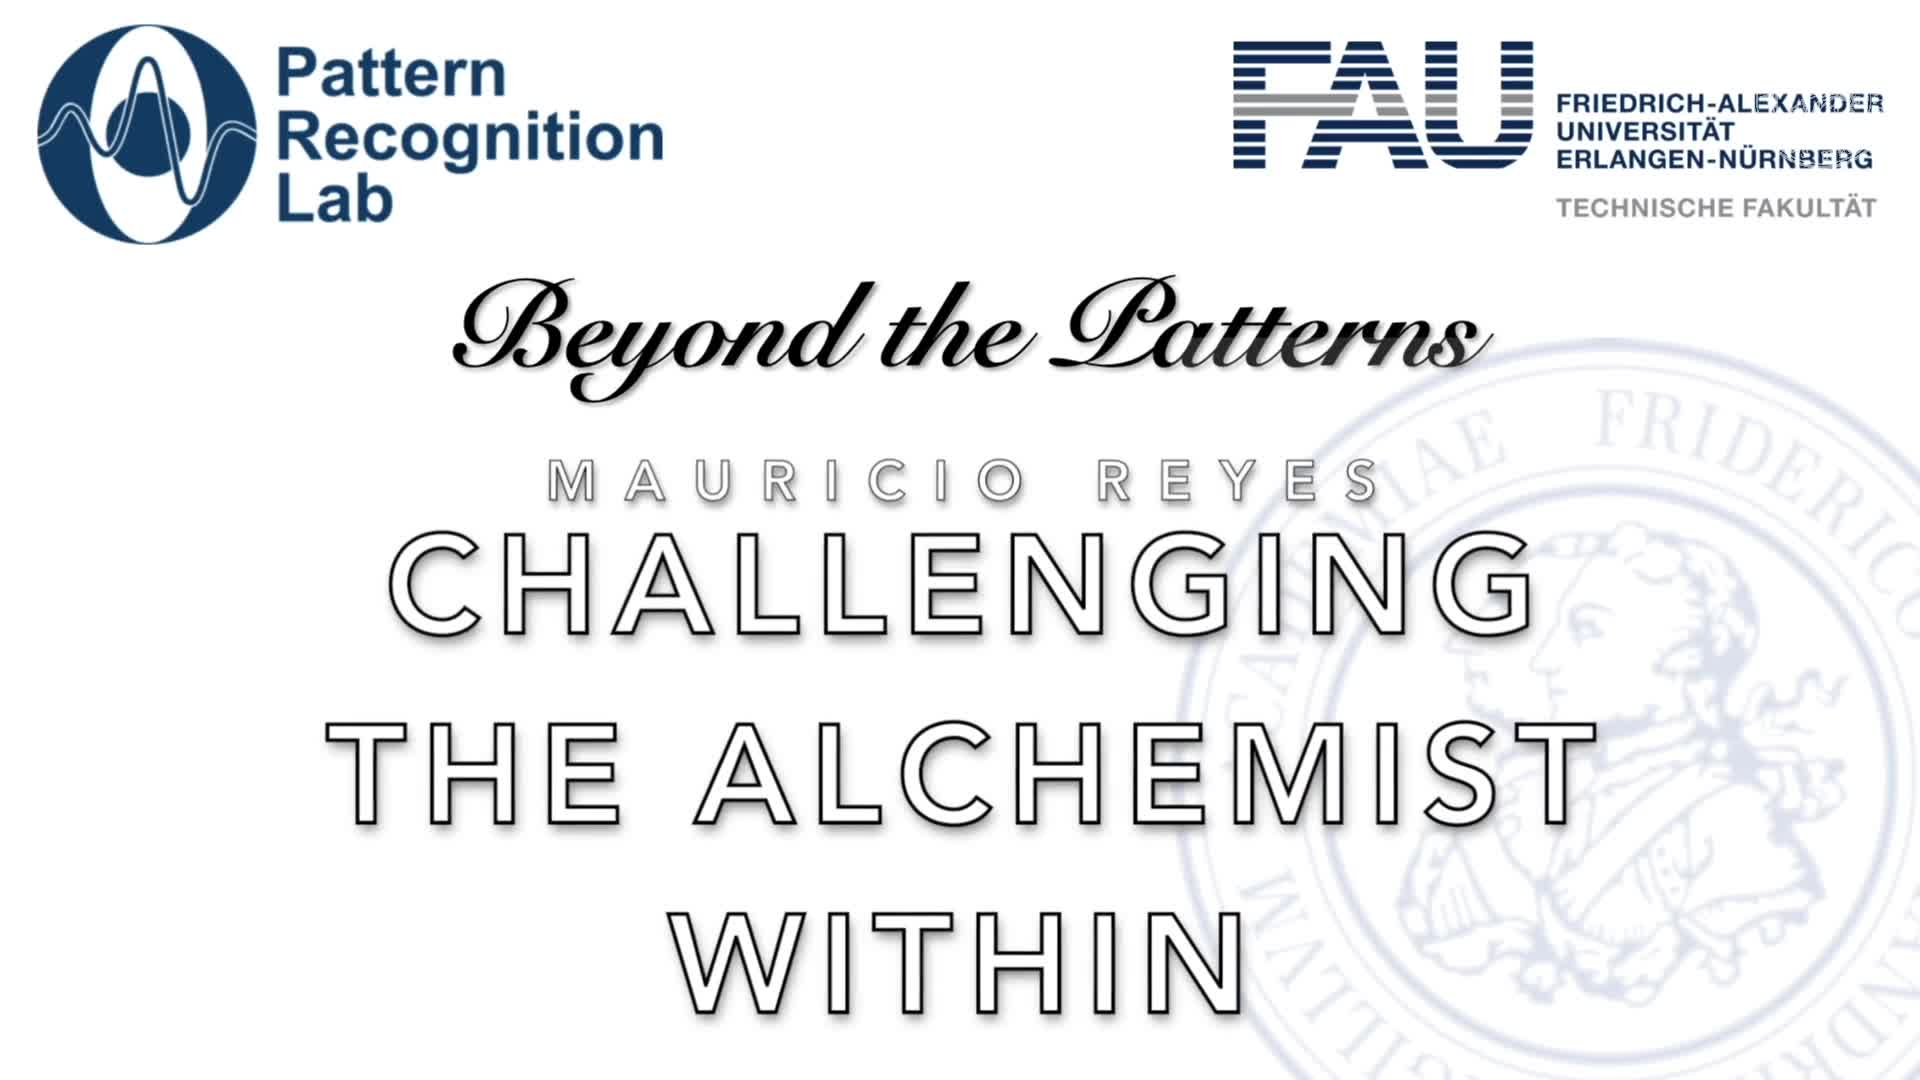 Beyond the Patterns - Mauricio Reyes - Medical image analysis in the era of deep learning: From performance to challenging the alchemist within preview image